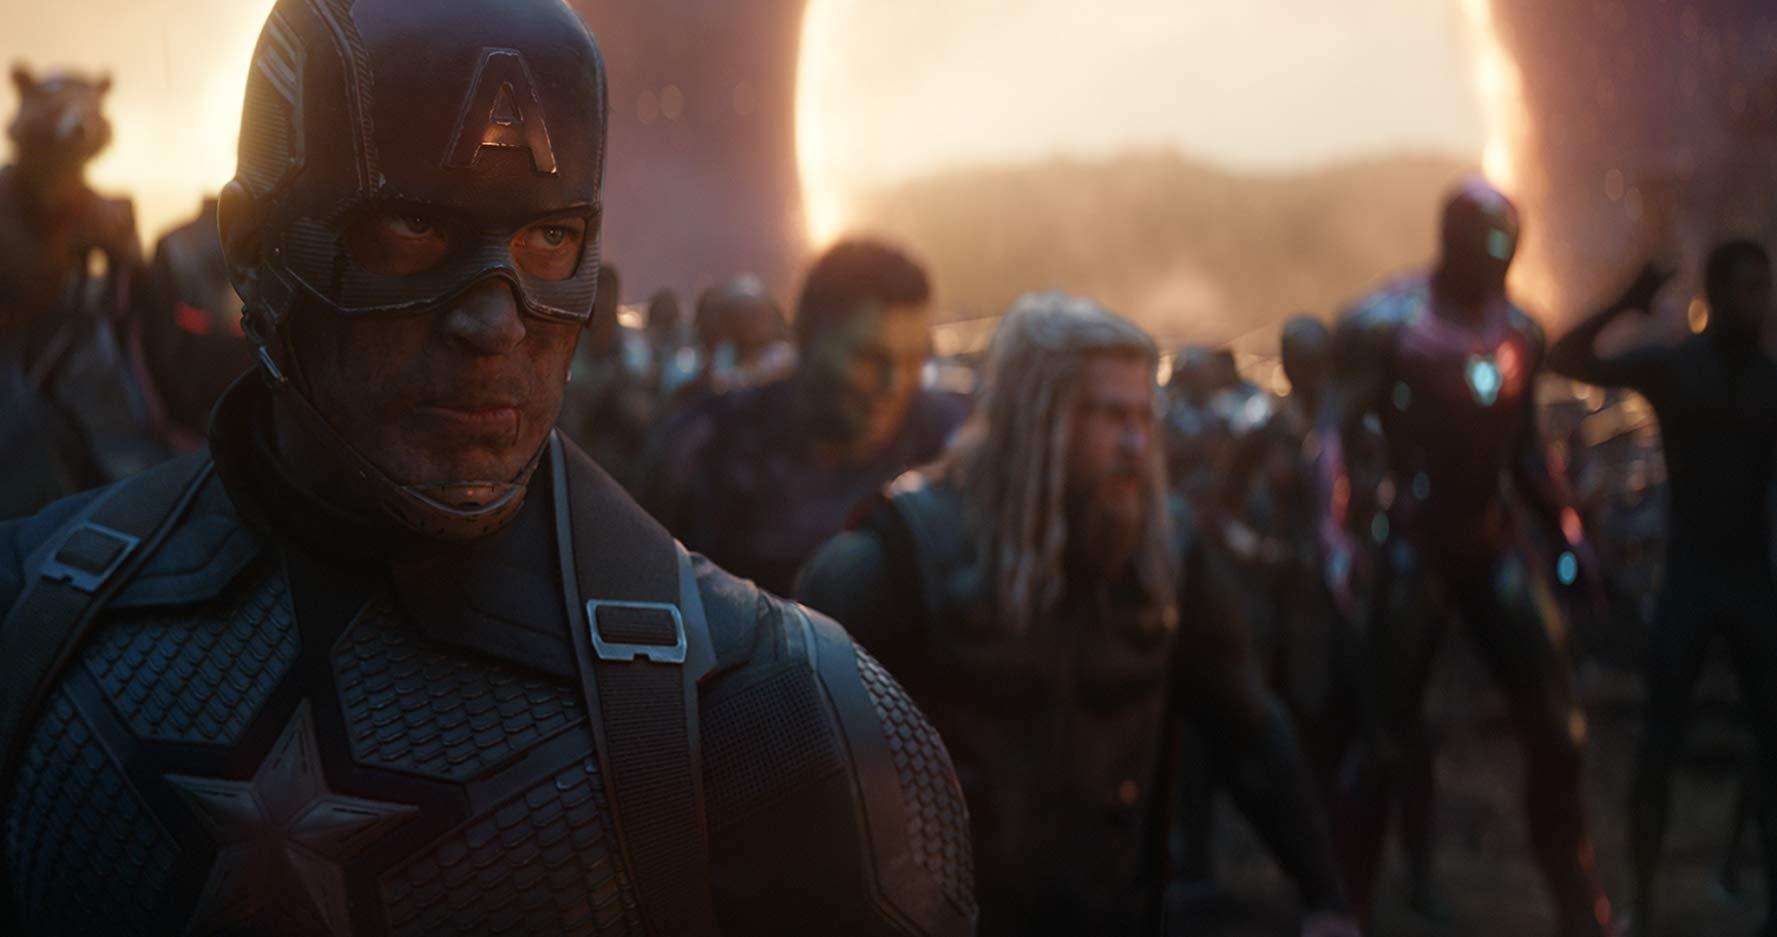 Why 'Avengers: Endgame' was so popular, according to Joe Russo